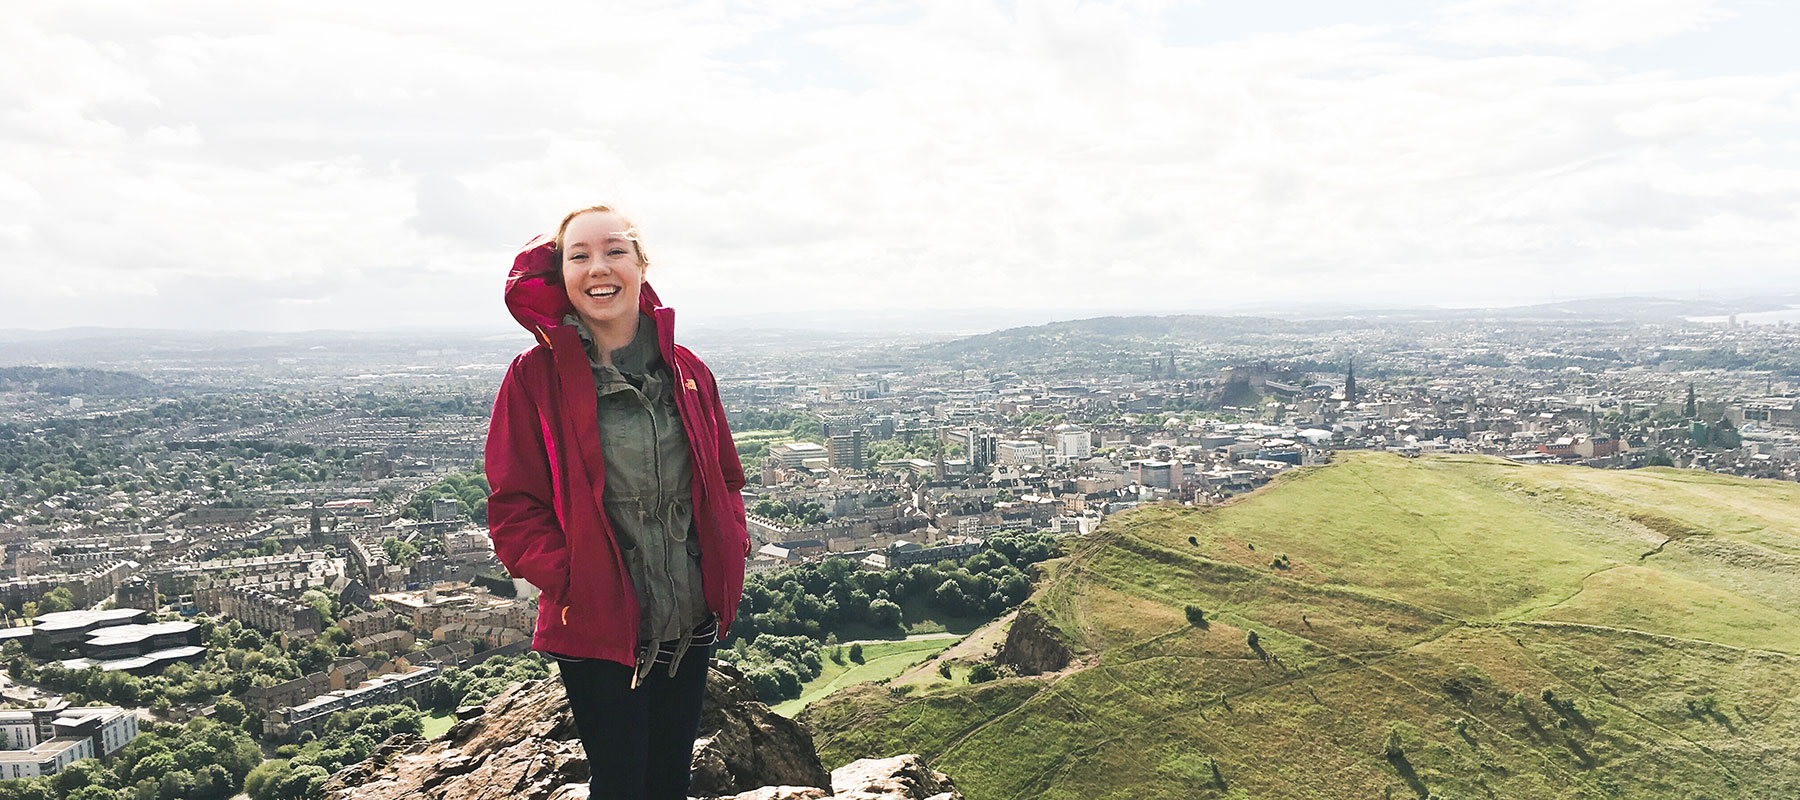 CoJMC student enjoys an elevated view of the Irish countryside